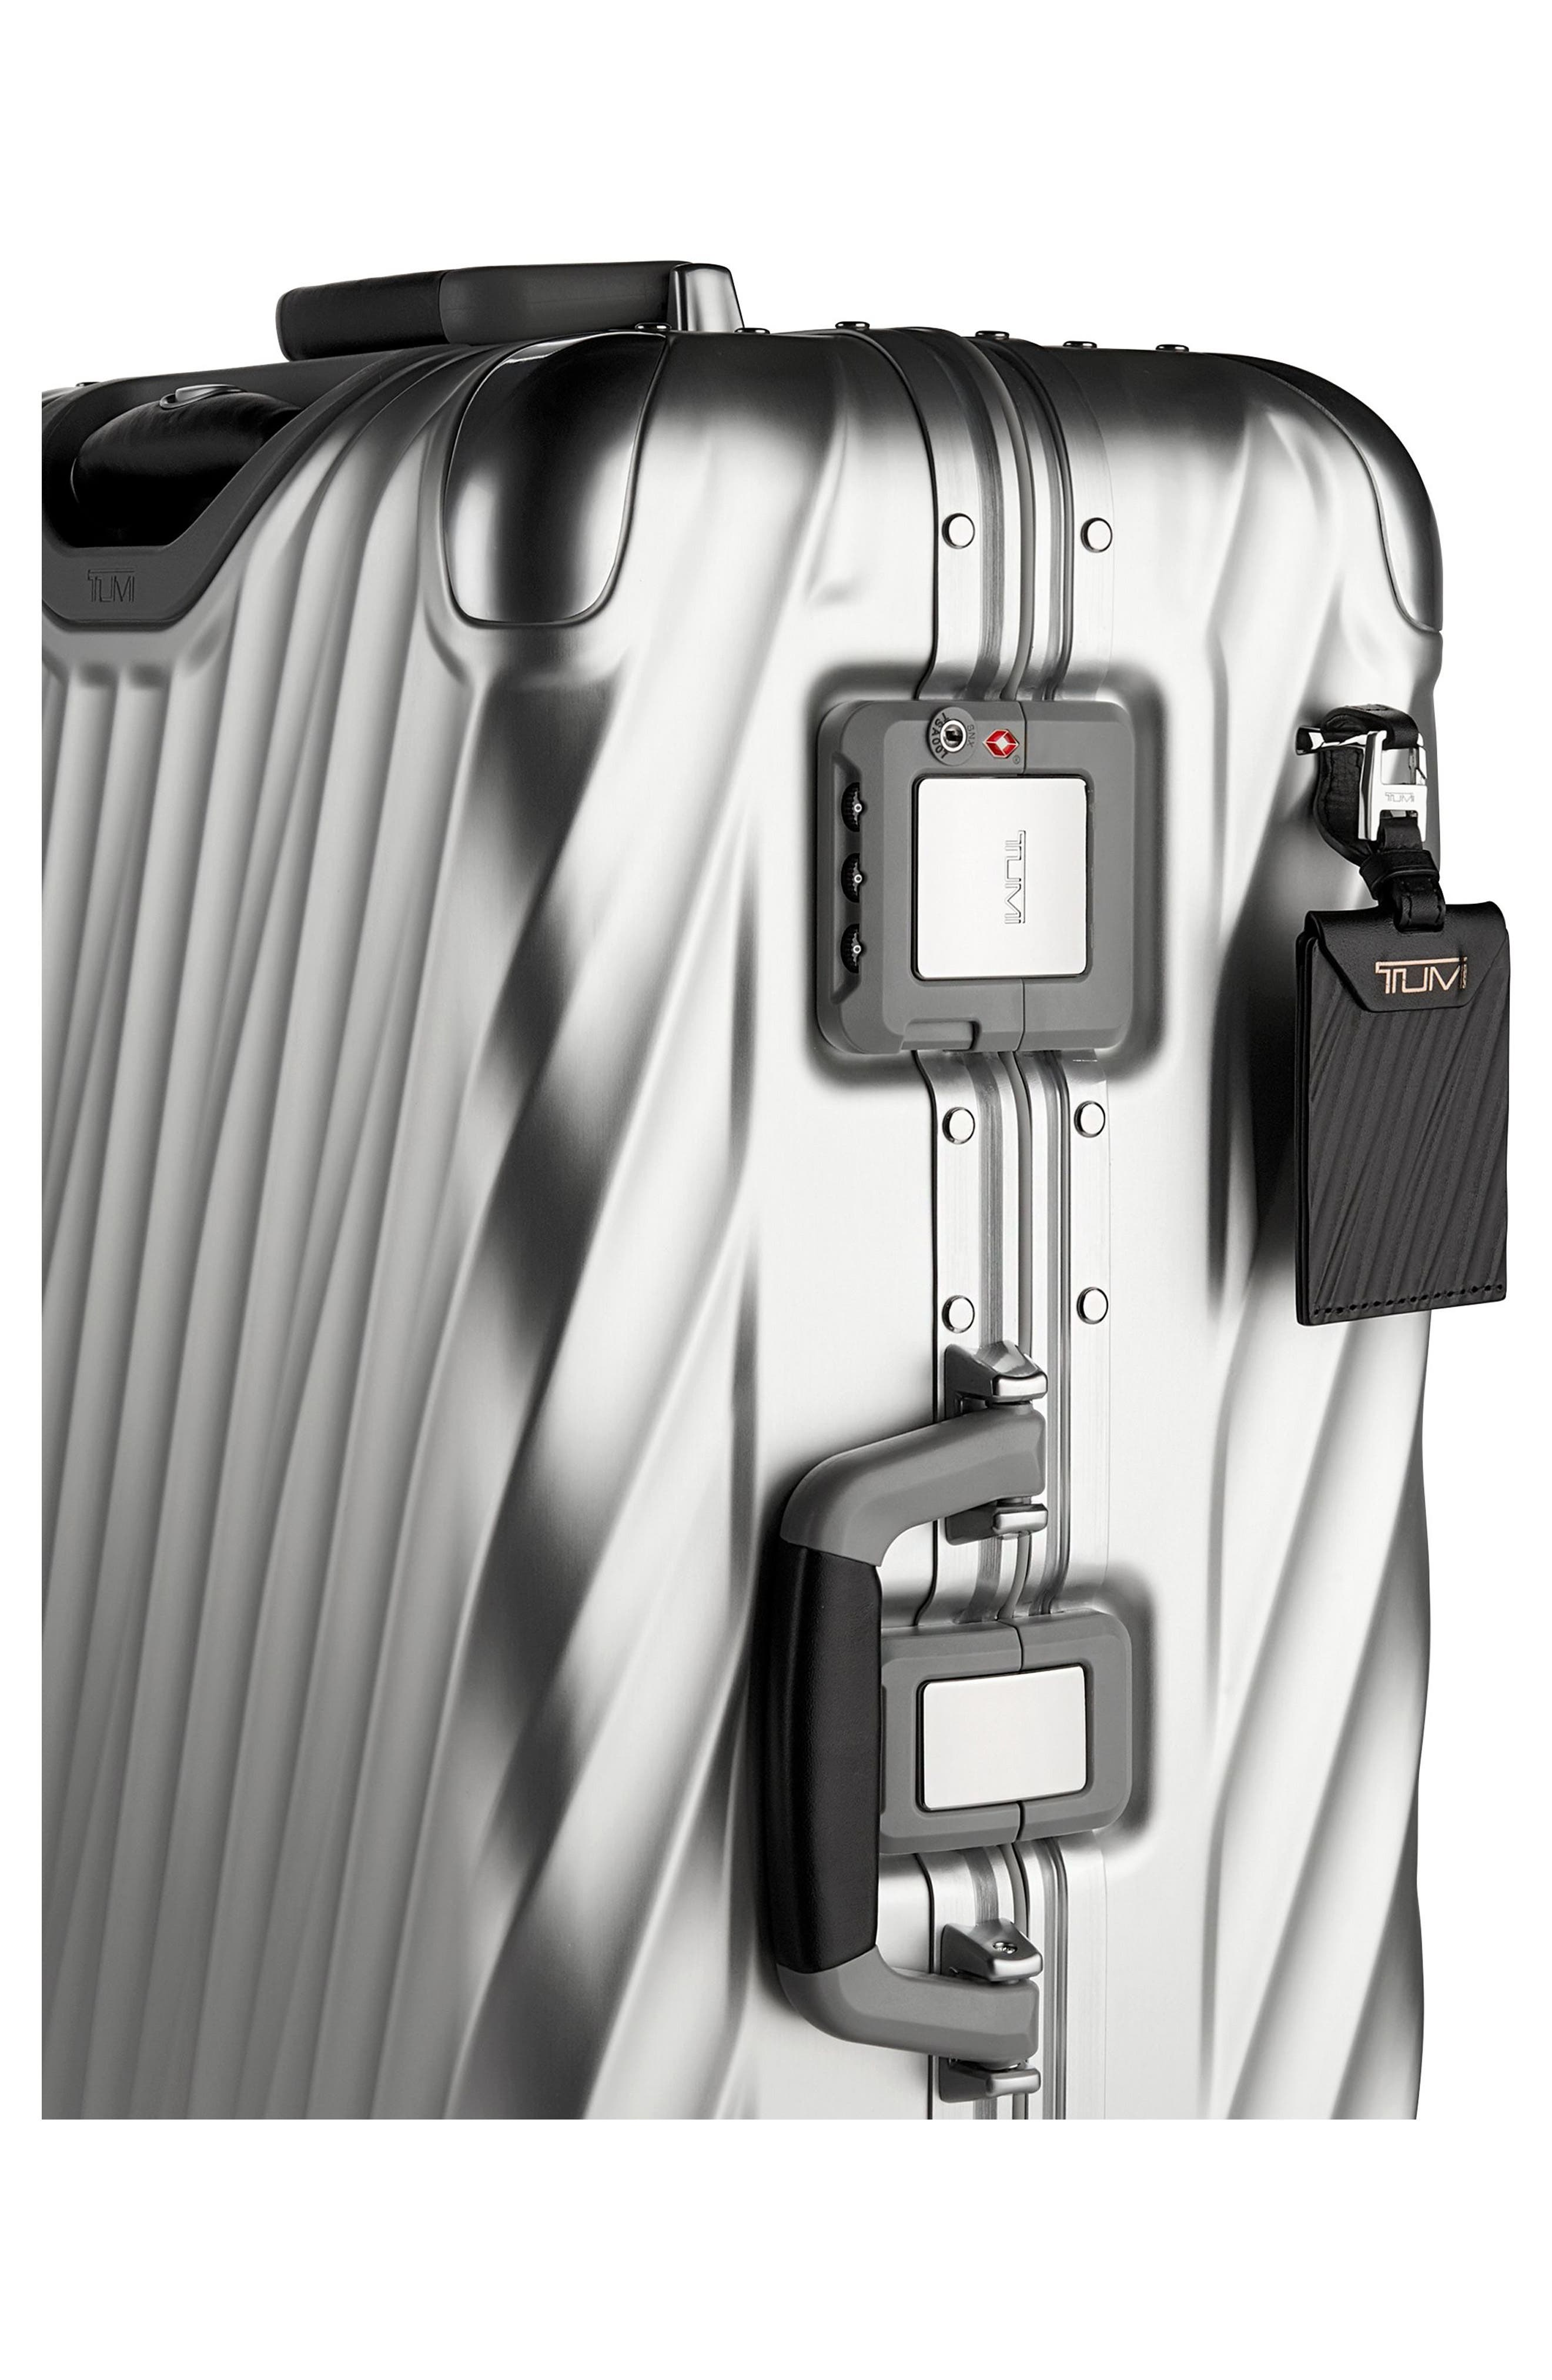 TUMI,                             19 Degree 31-Inch Extended Trip Wheeled Aluminum Packing Case,                             Alternate thumbnail 3, color,                             SILVER